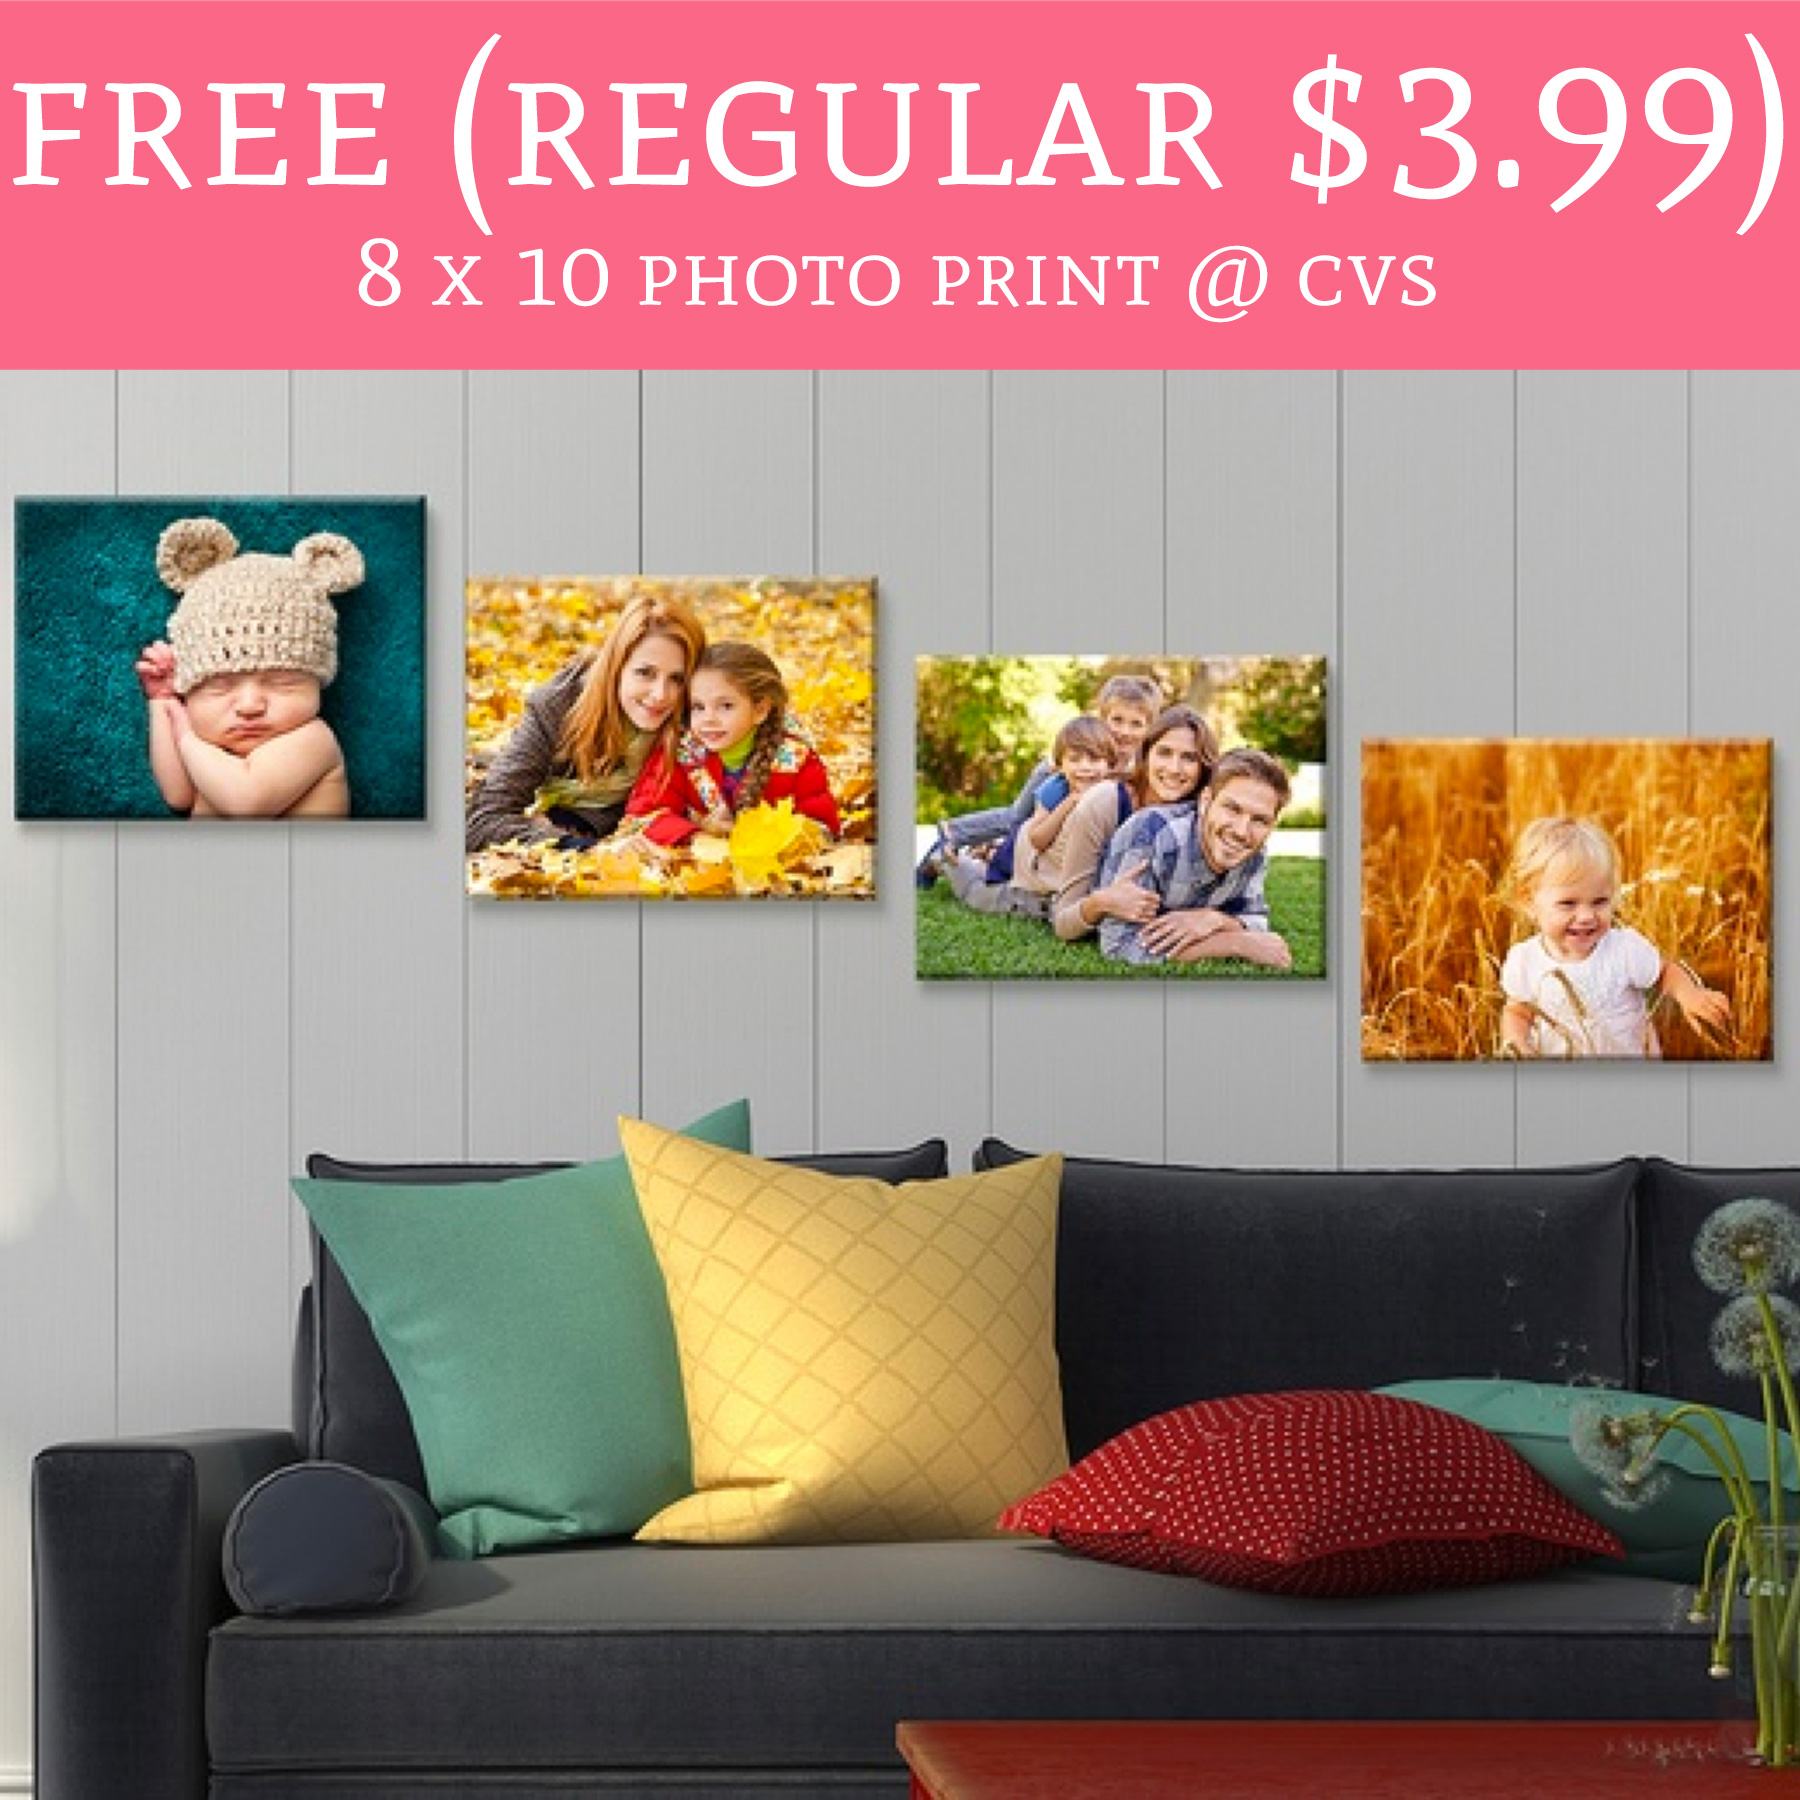 free  regular  3 99  8 x 10 photo print   cvs